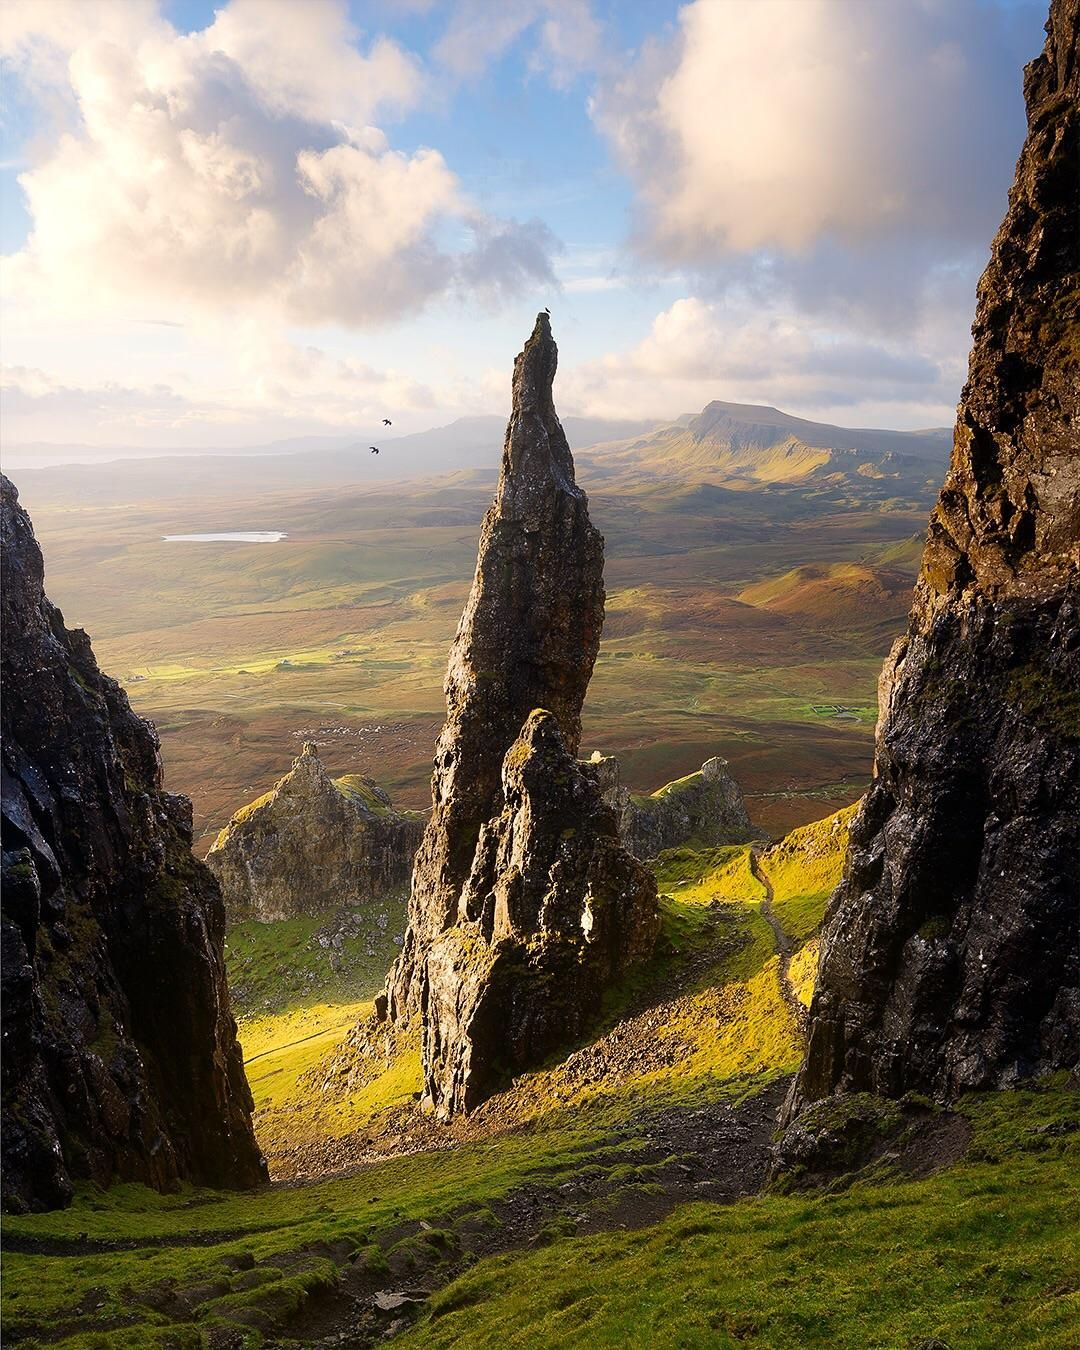 Did You Know There Is Another Rock Like The Old Man Of Storr On The Isle Of Skye 950x600 Oc E Scotland Landscape Landscape Photography Fantasy Landscape